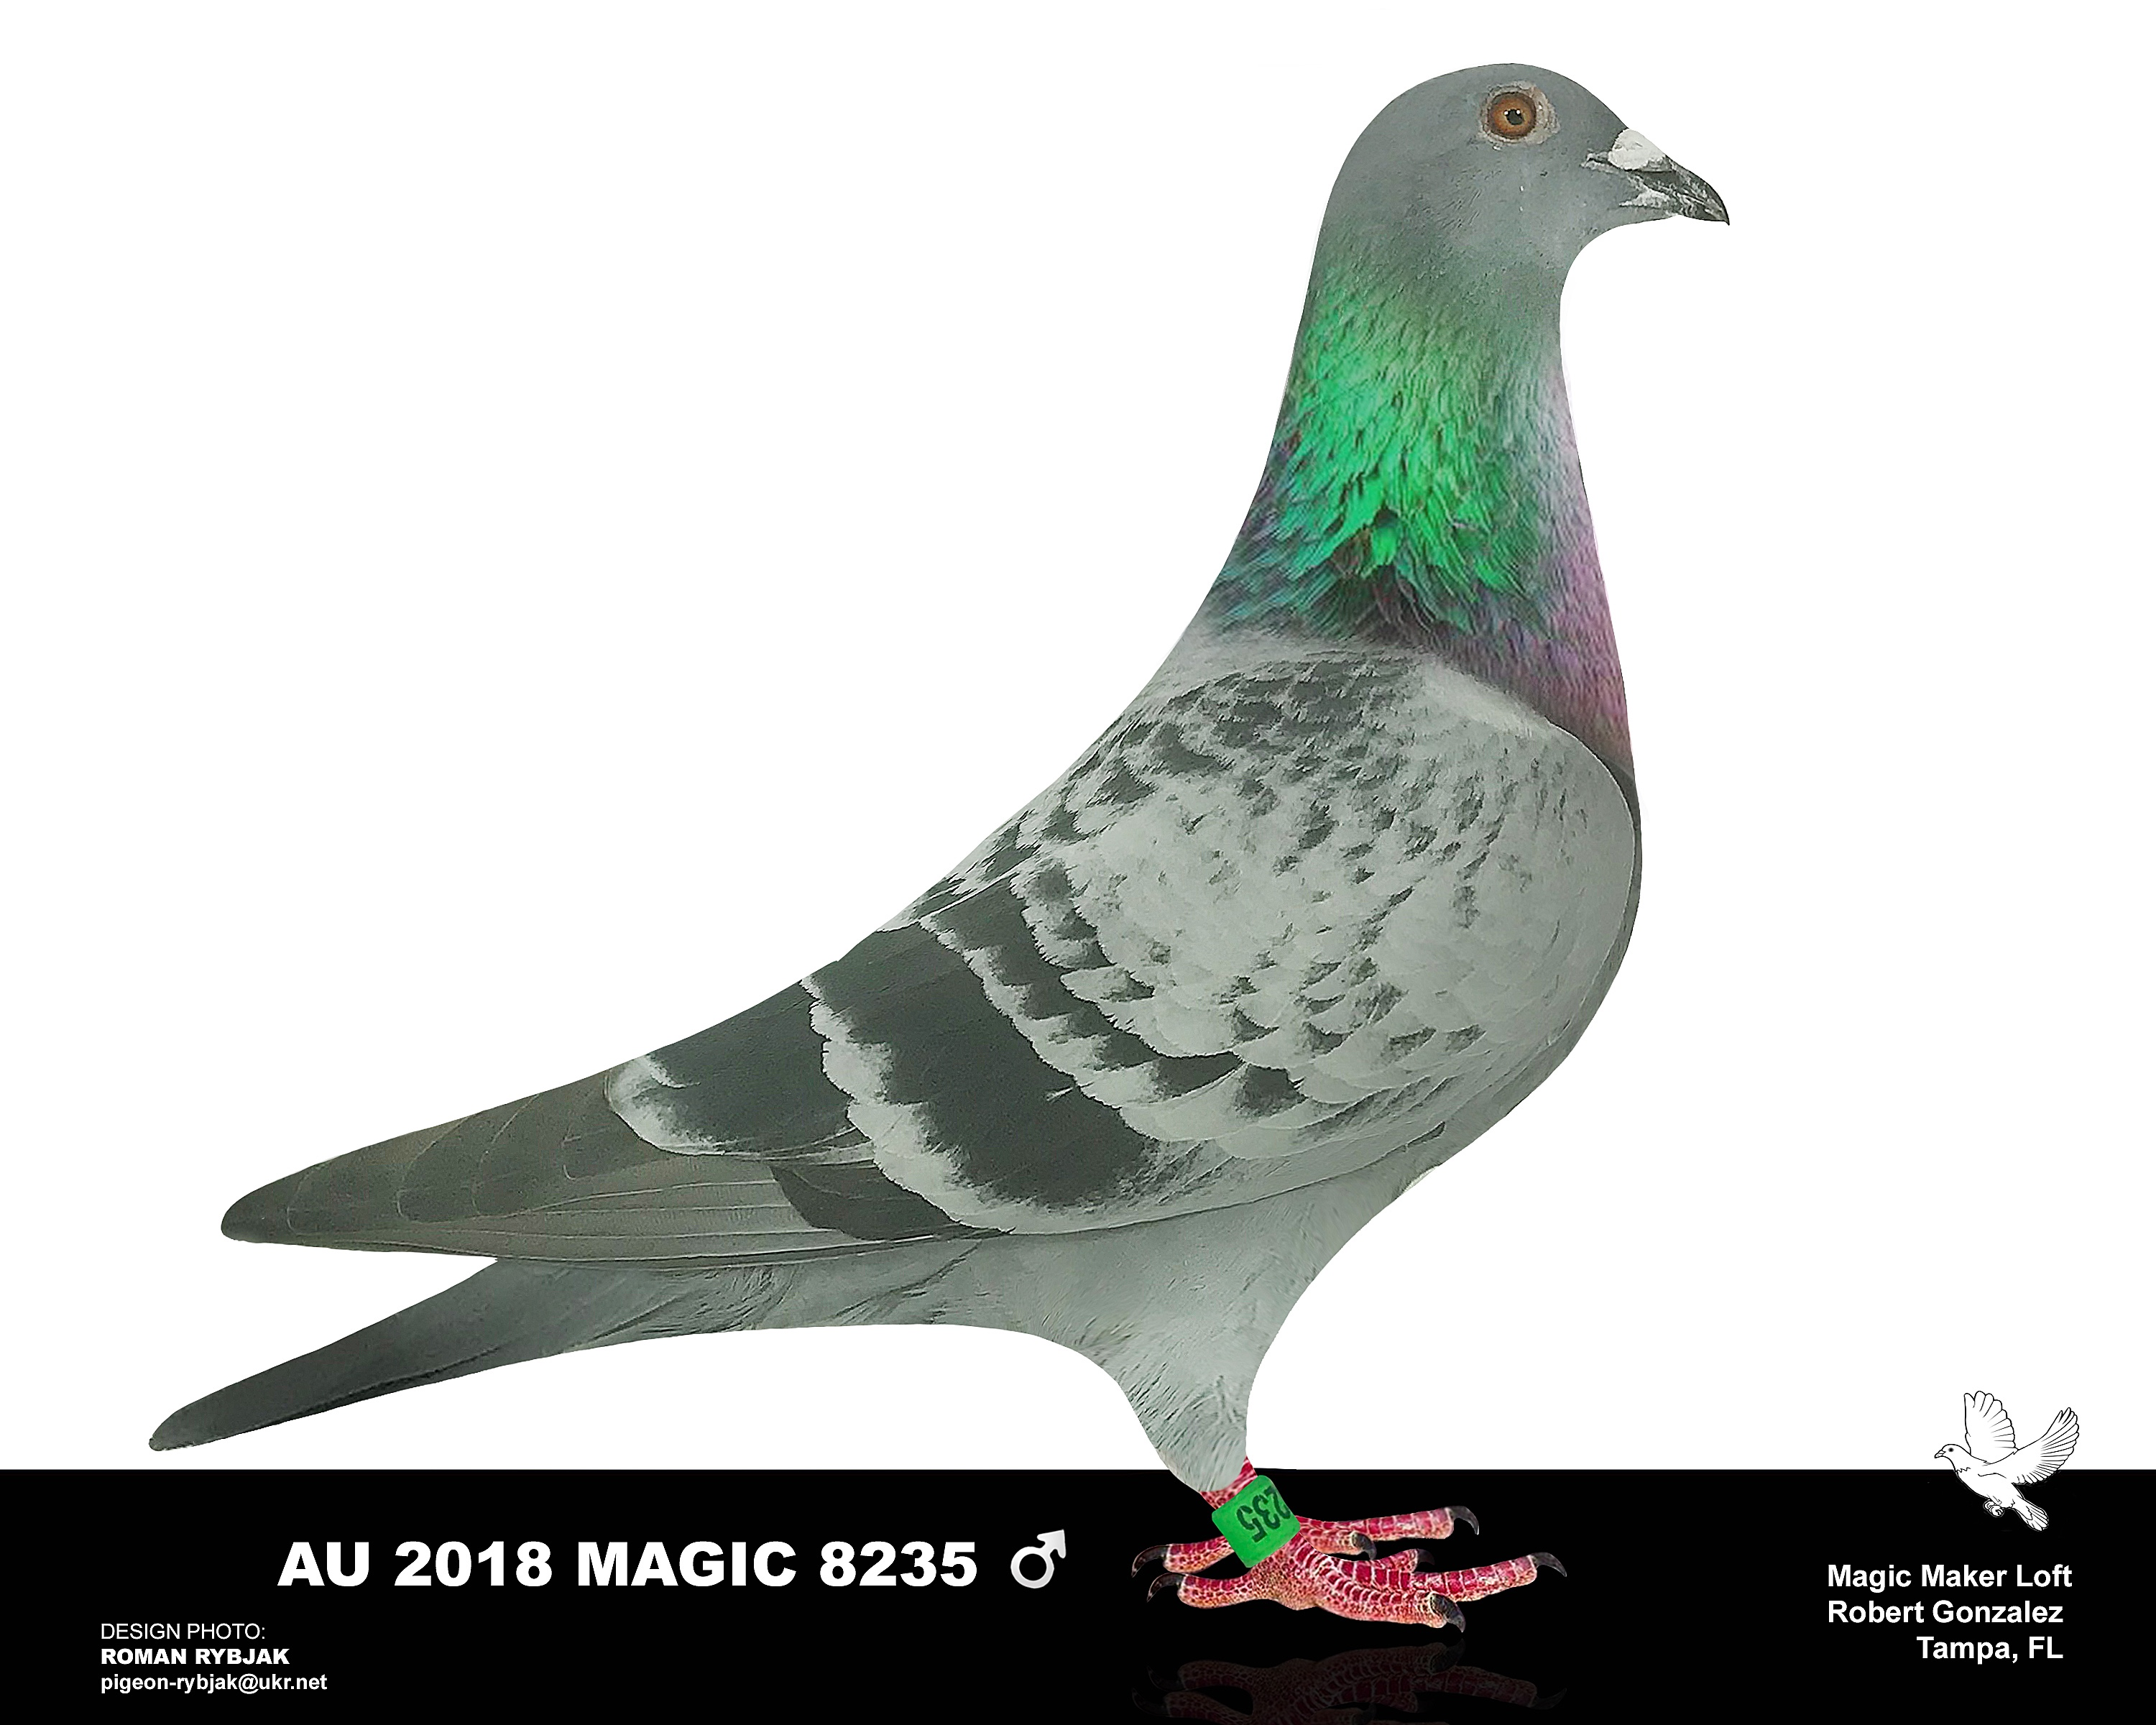 AU 2018 Magic 8235 BC cock